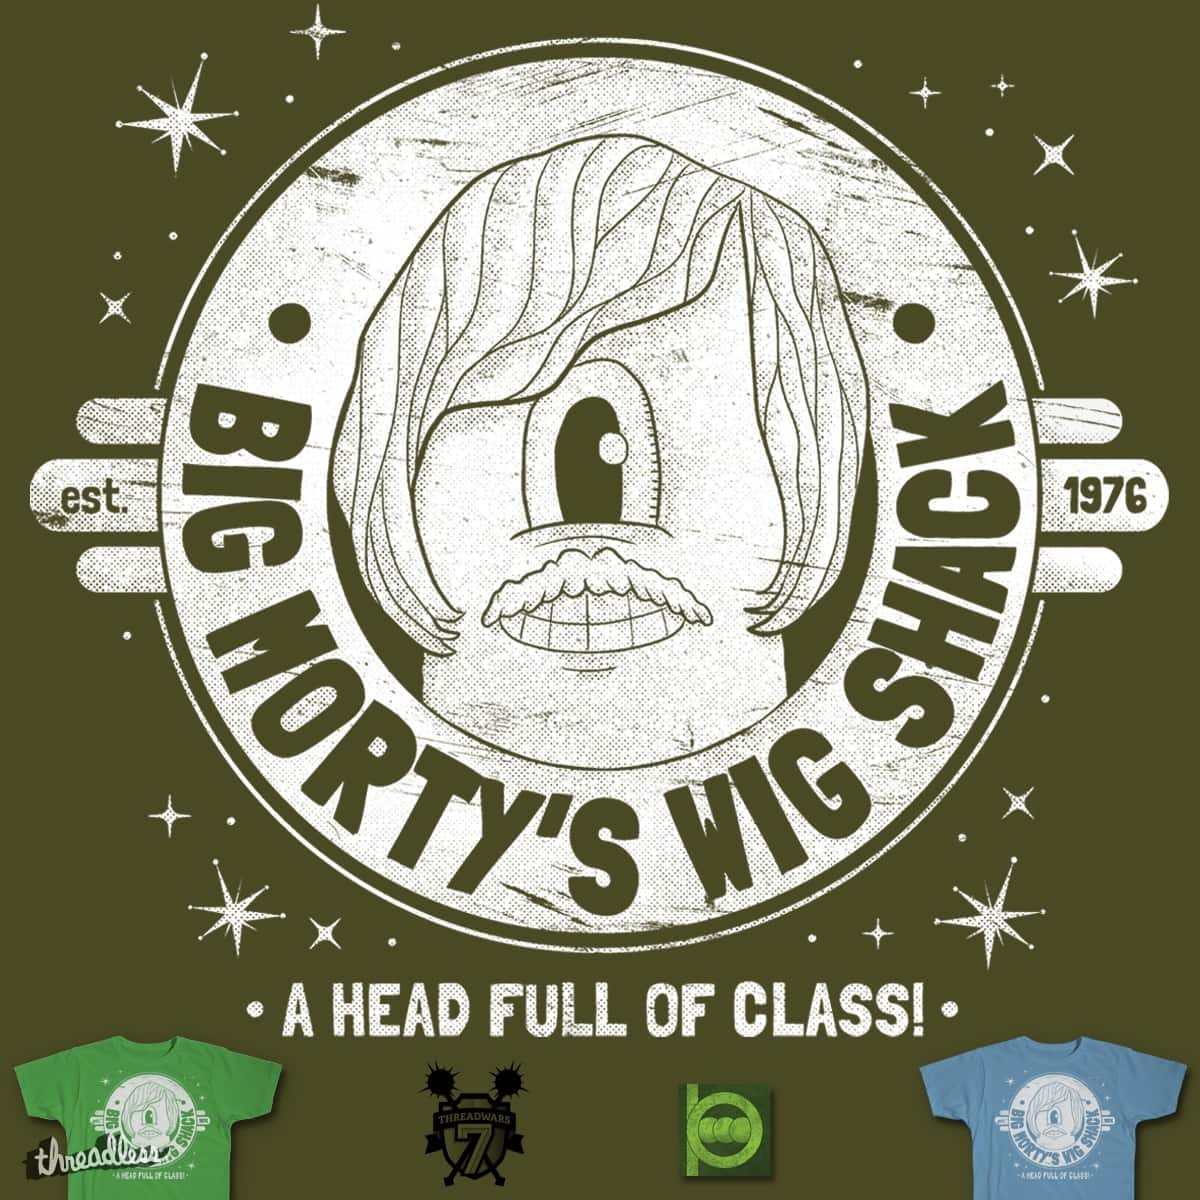 Big Morty's Wig Shack by BeanePod on Threadless